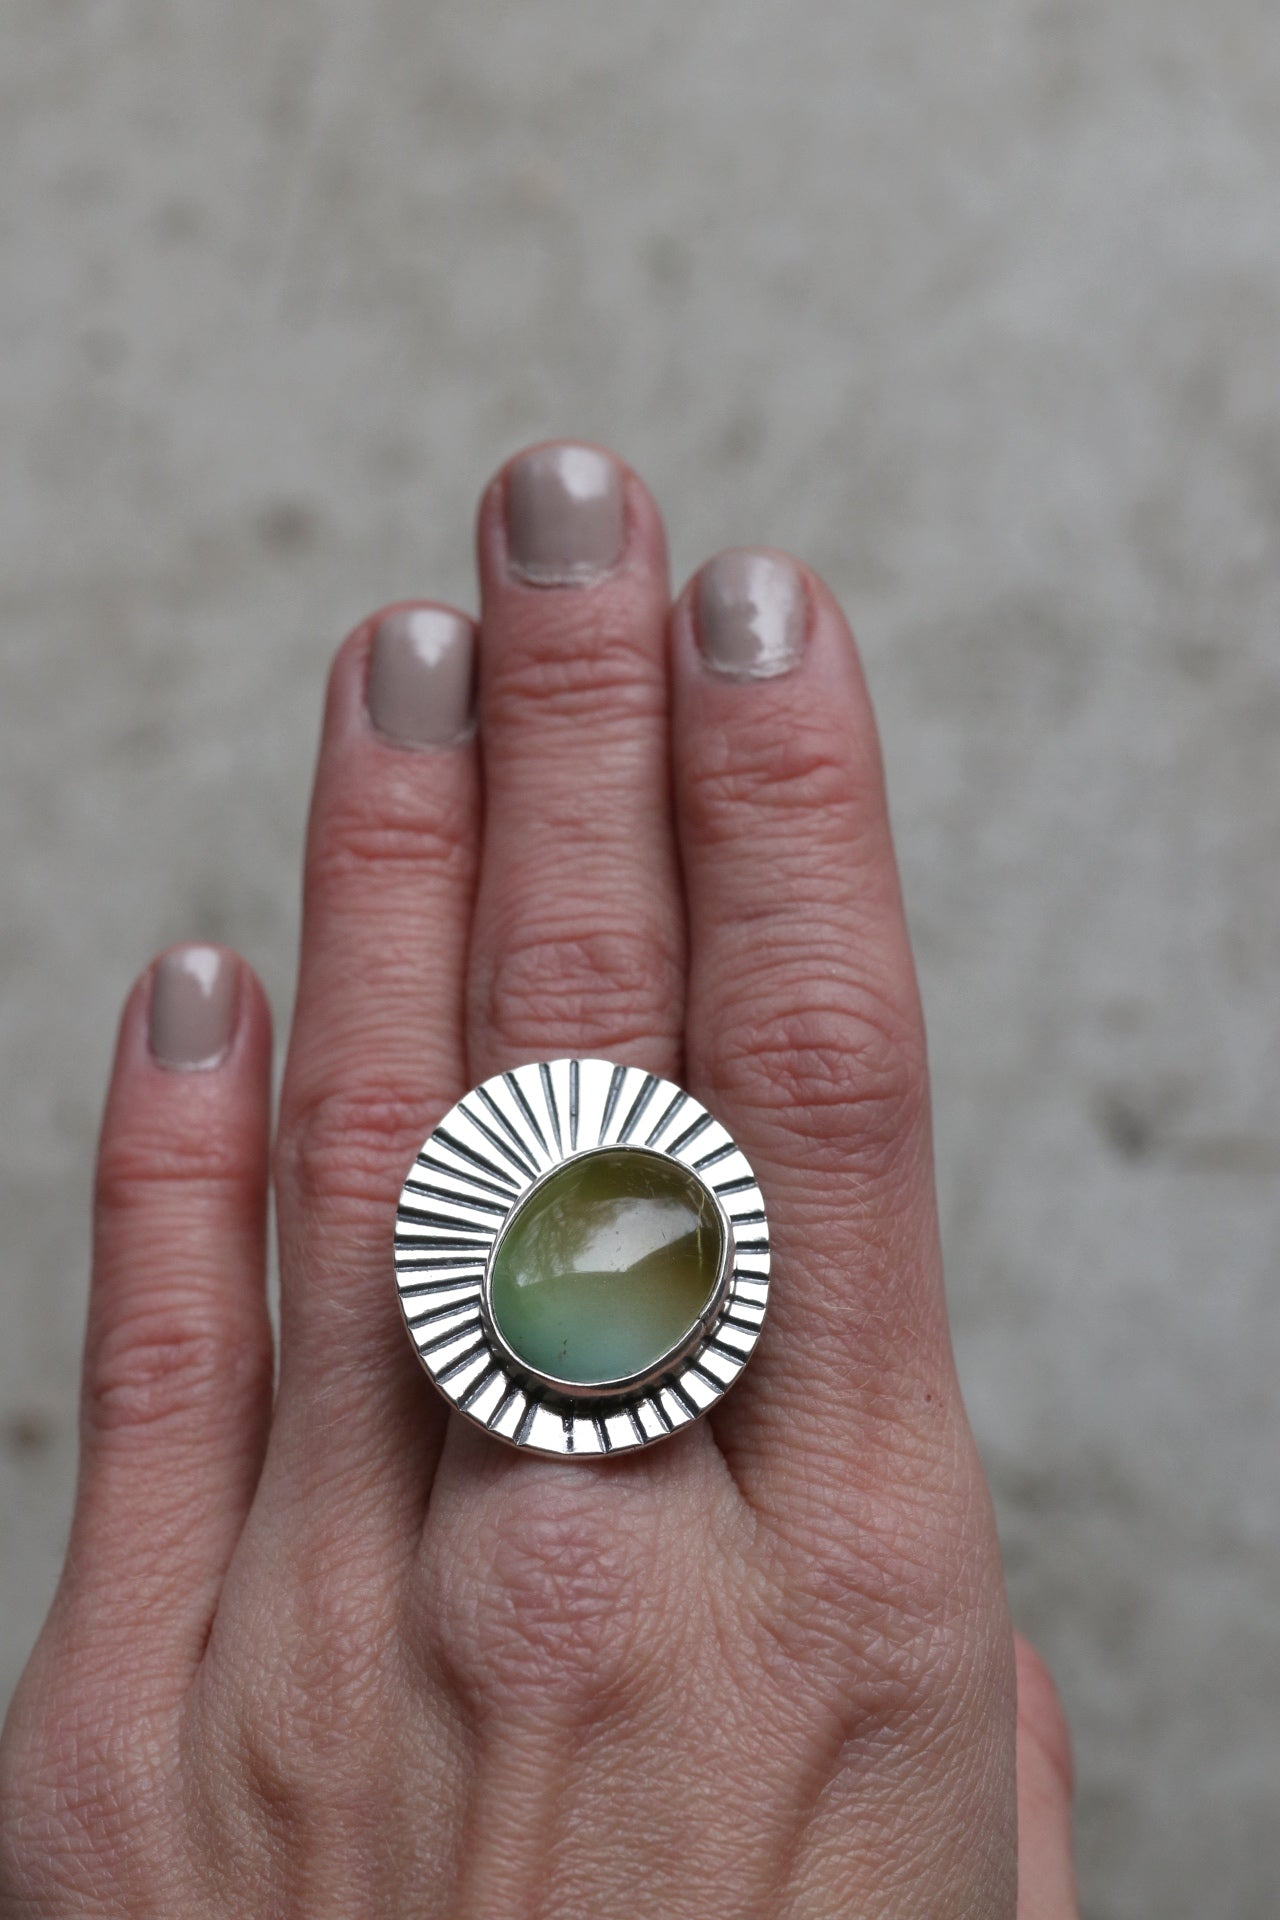 Sunburst Ring #19 - Size 5